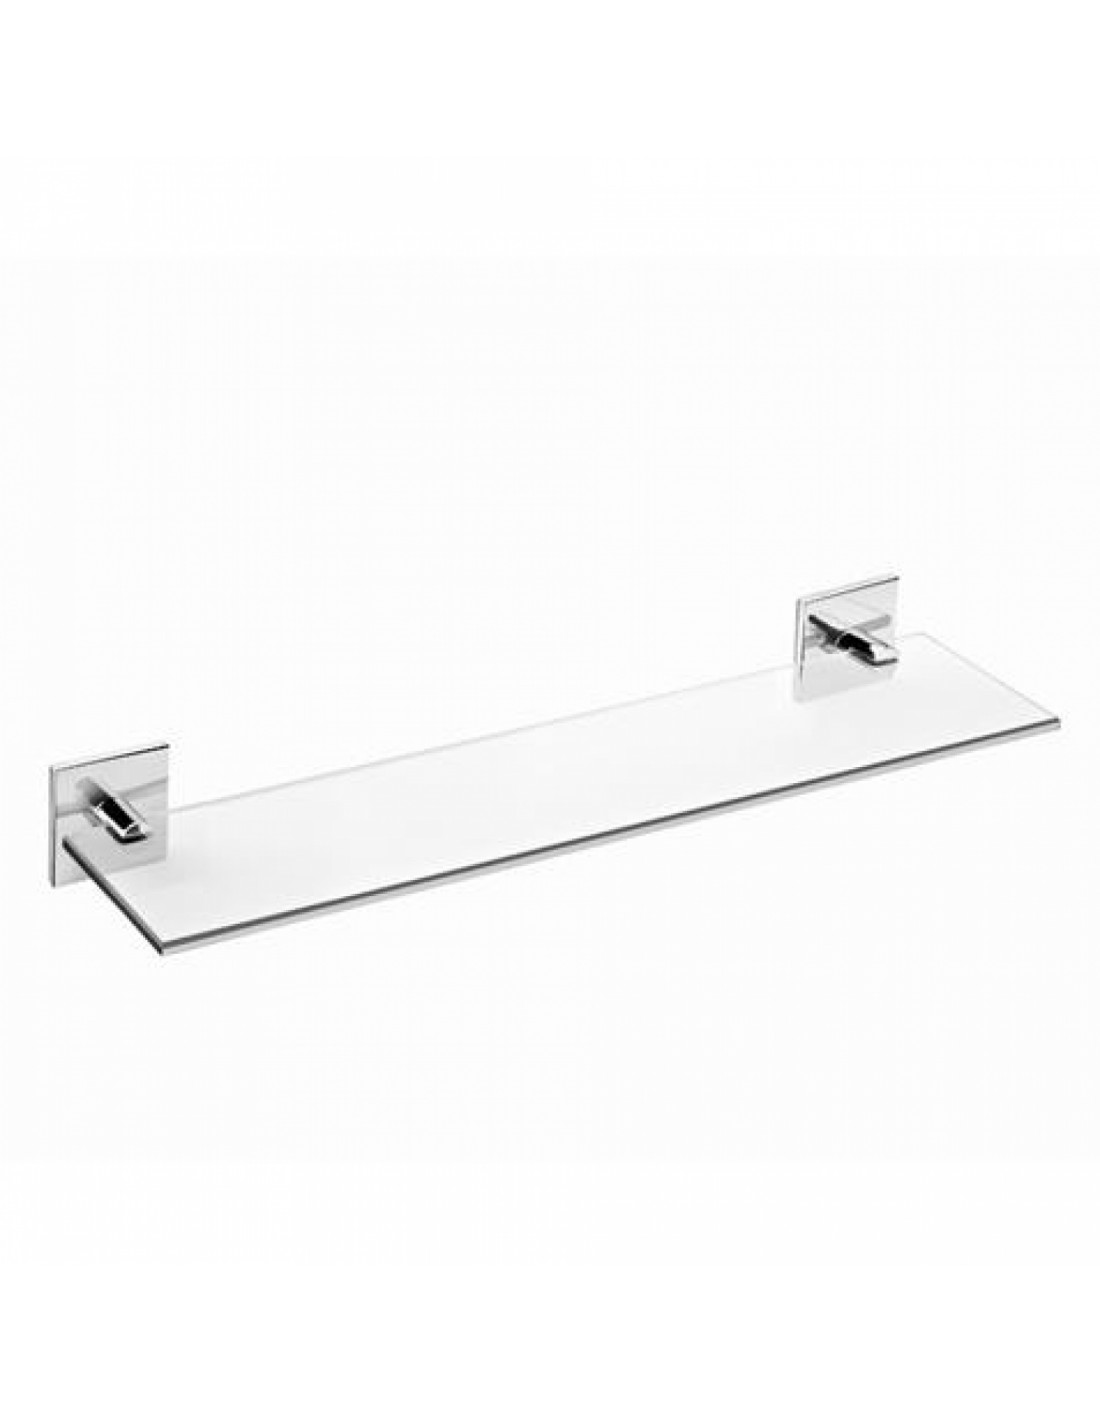 Tablette salle de bain en verre 40 cm à coller Duo Square - Bath +